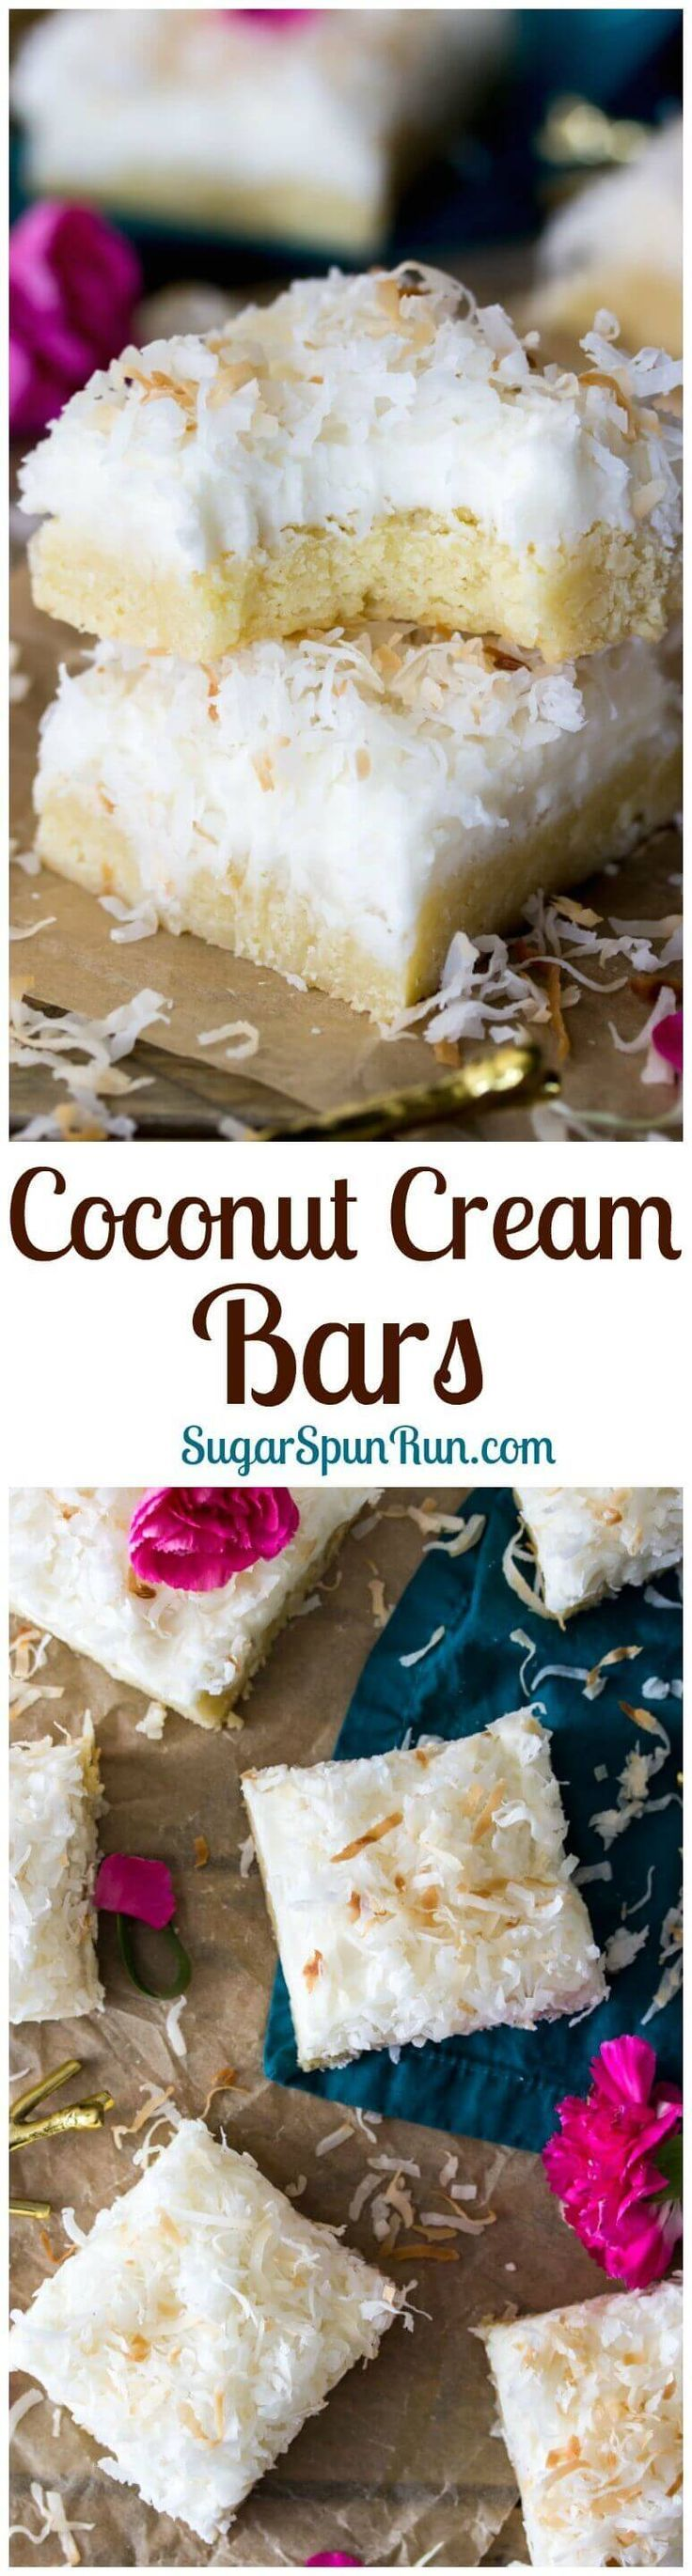 Coconut Cream Bars via @sugarspunrun